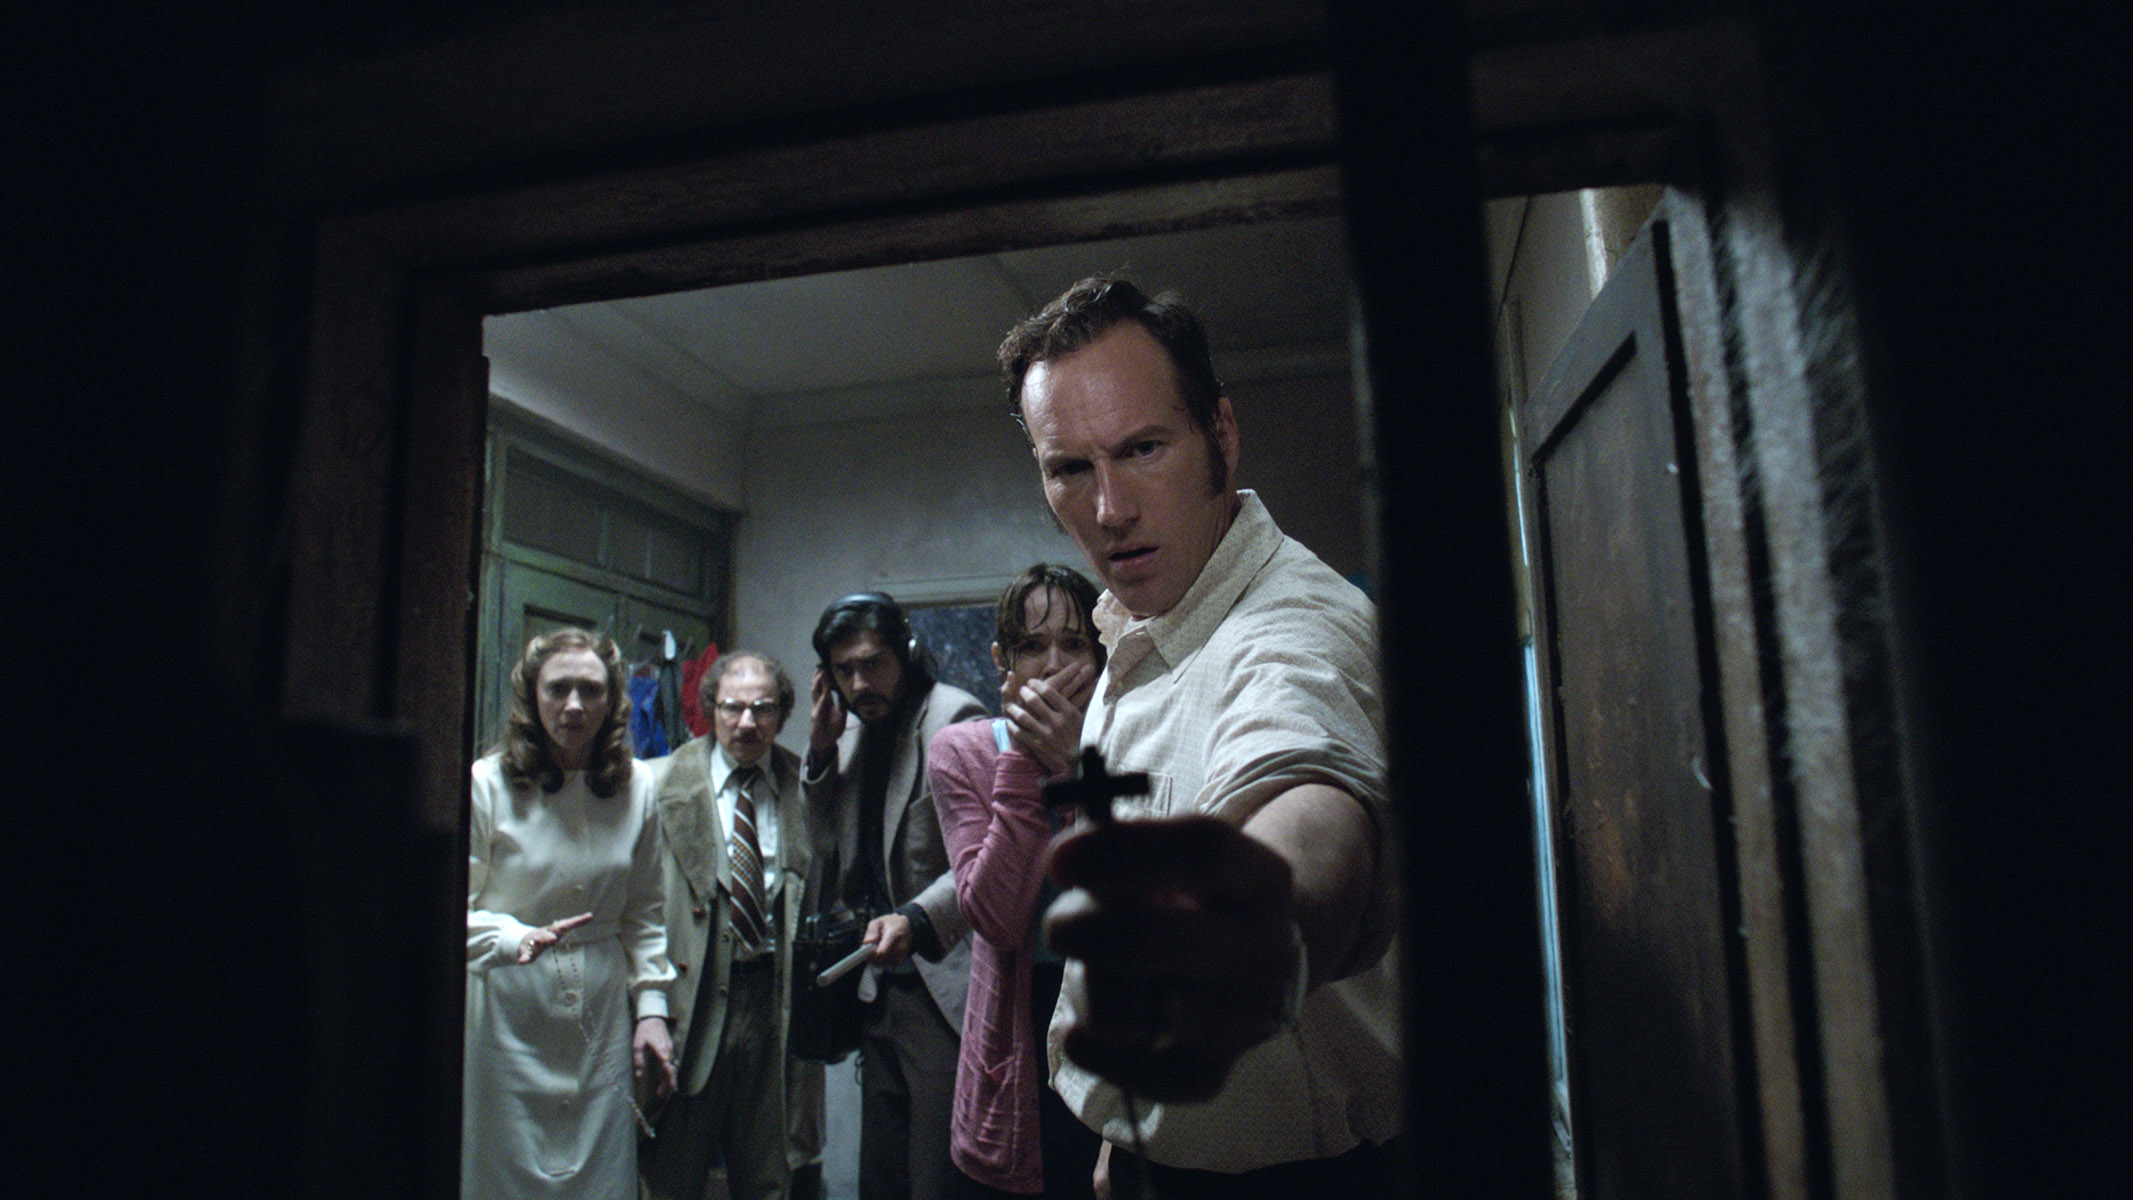 The Conjuring 2' Movie Review - Rolling Stone